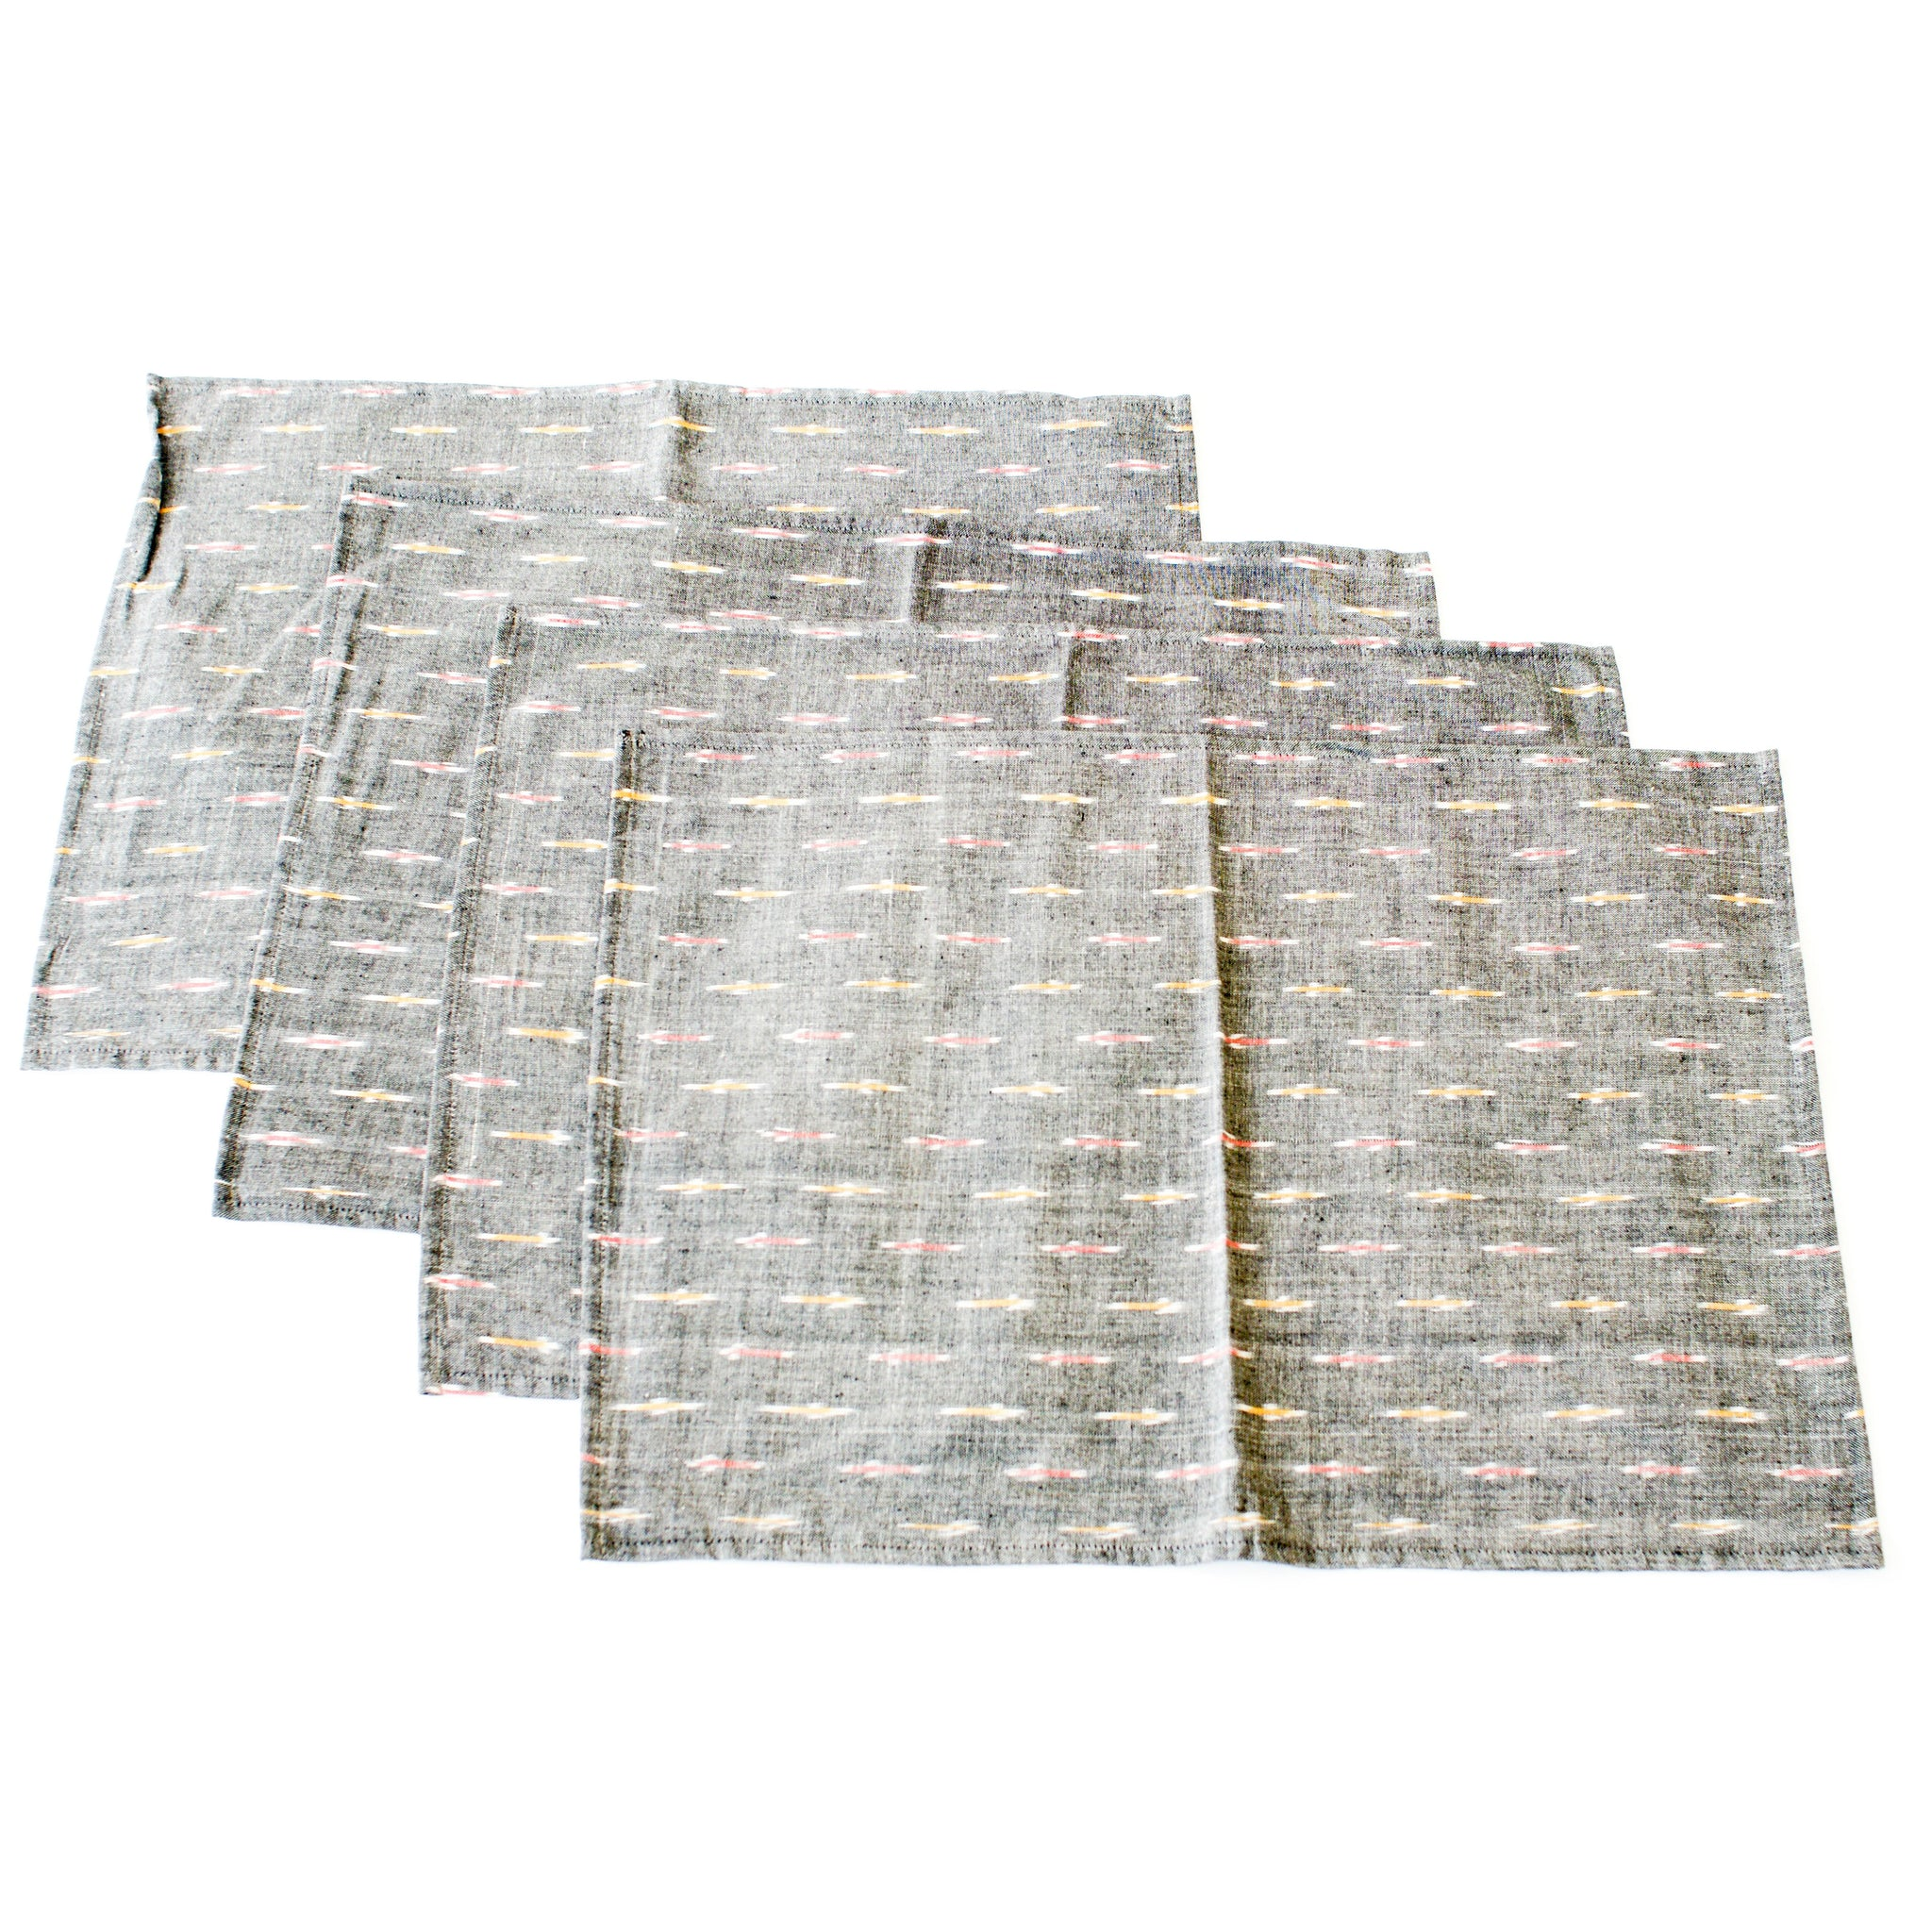 Ikat Cotton Cloth Placemat Grey Red Gold Dash Set of 4